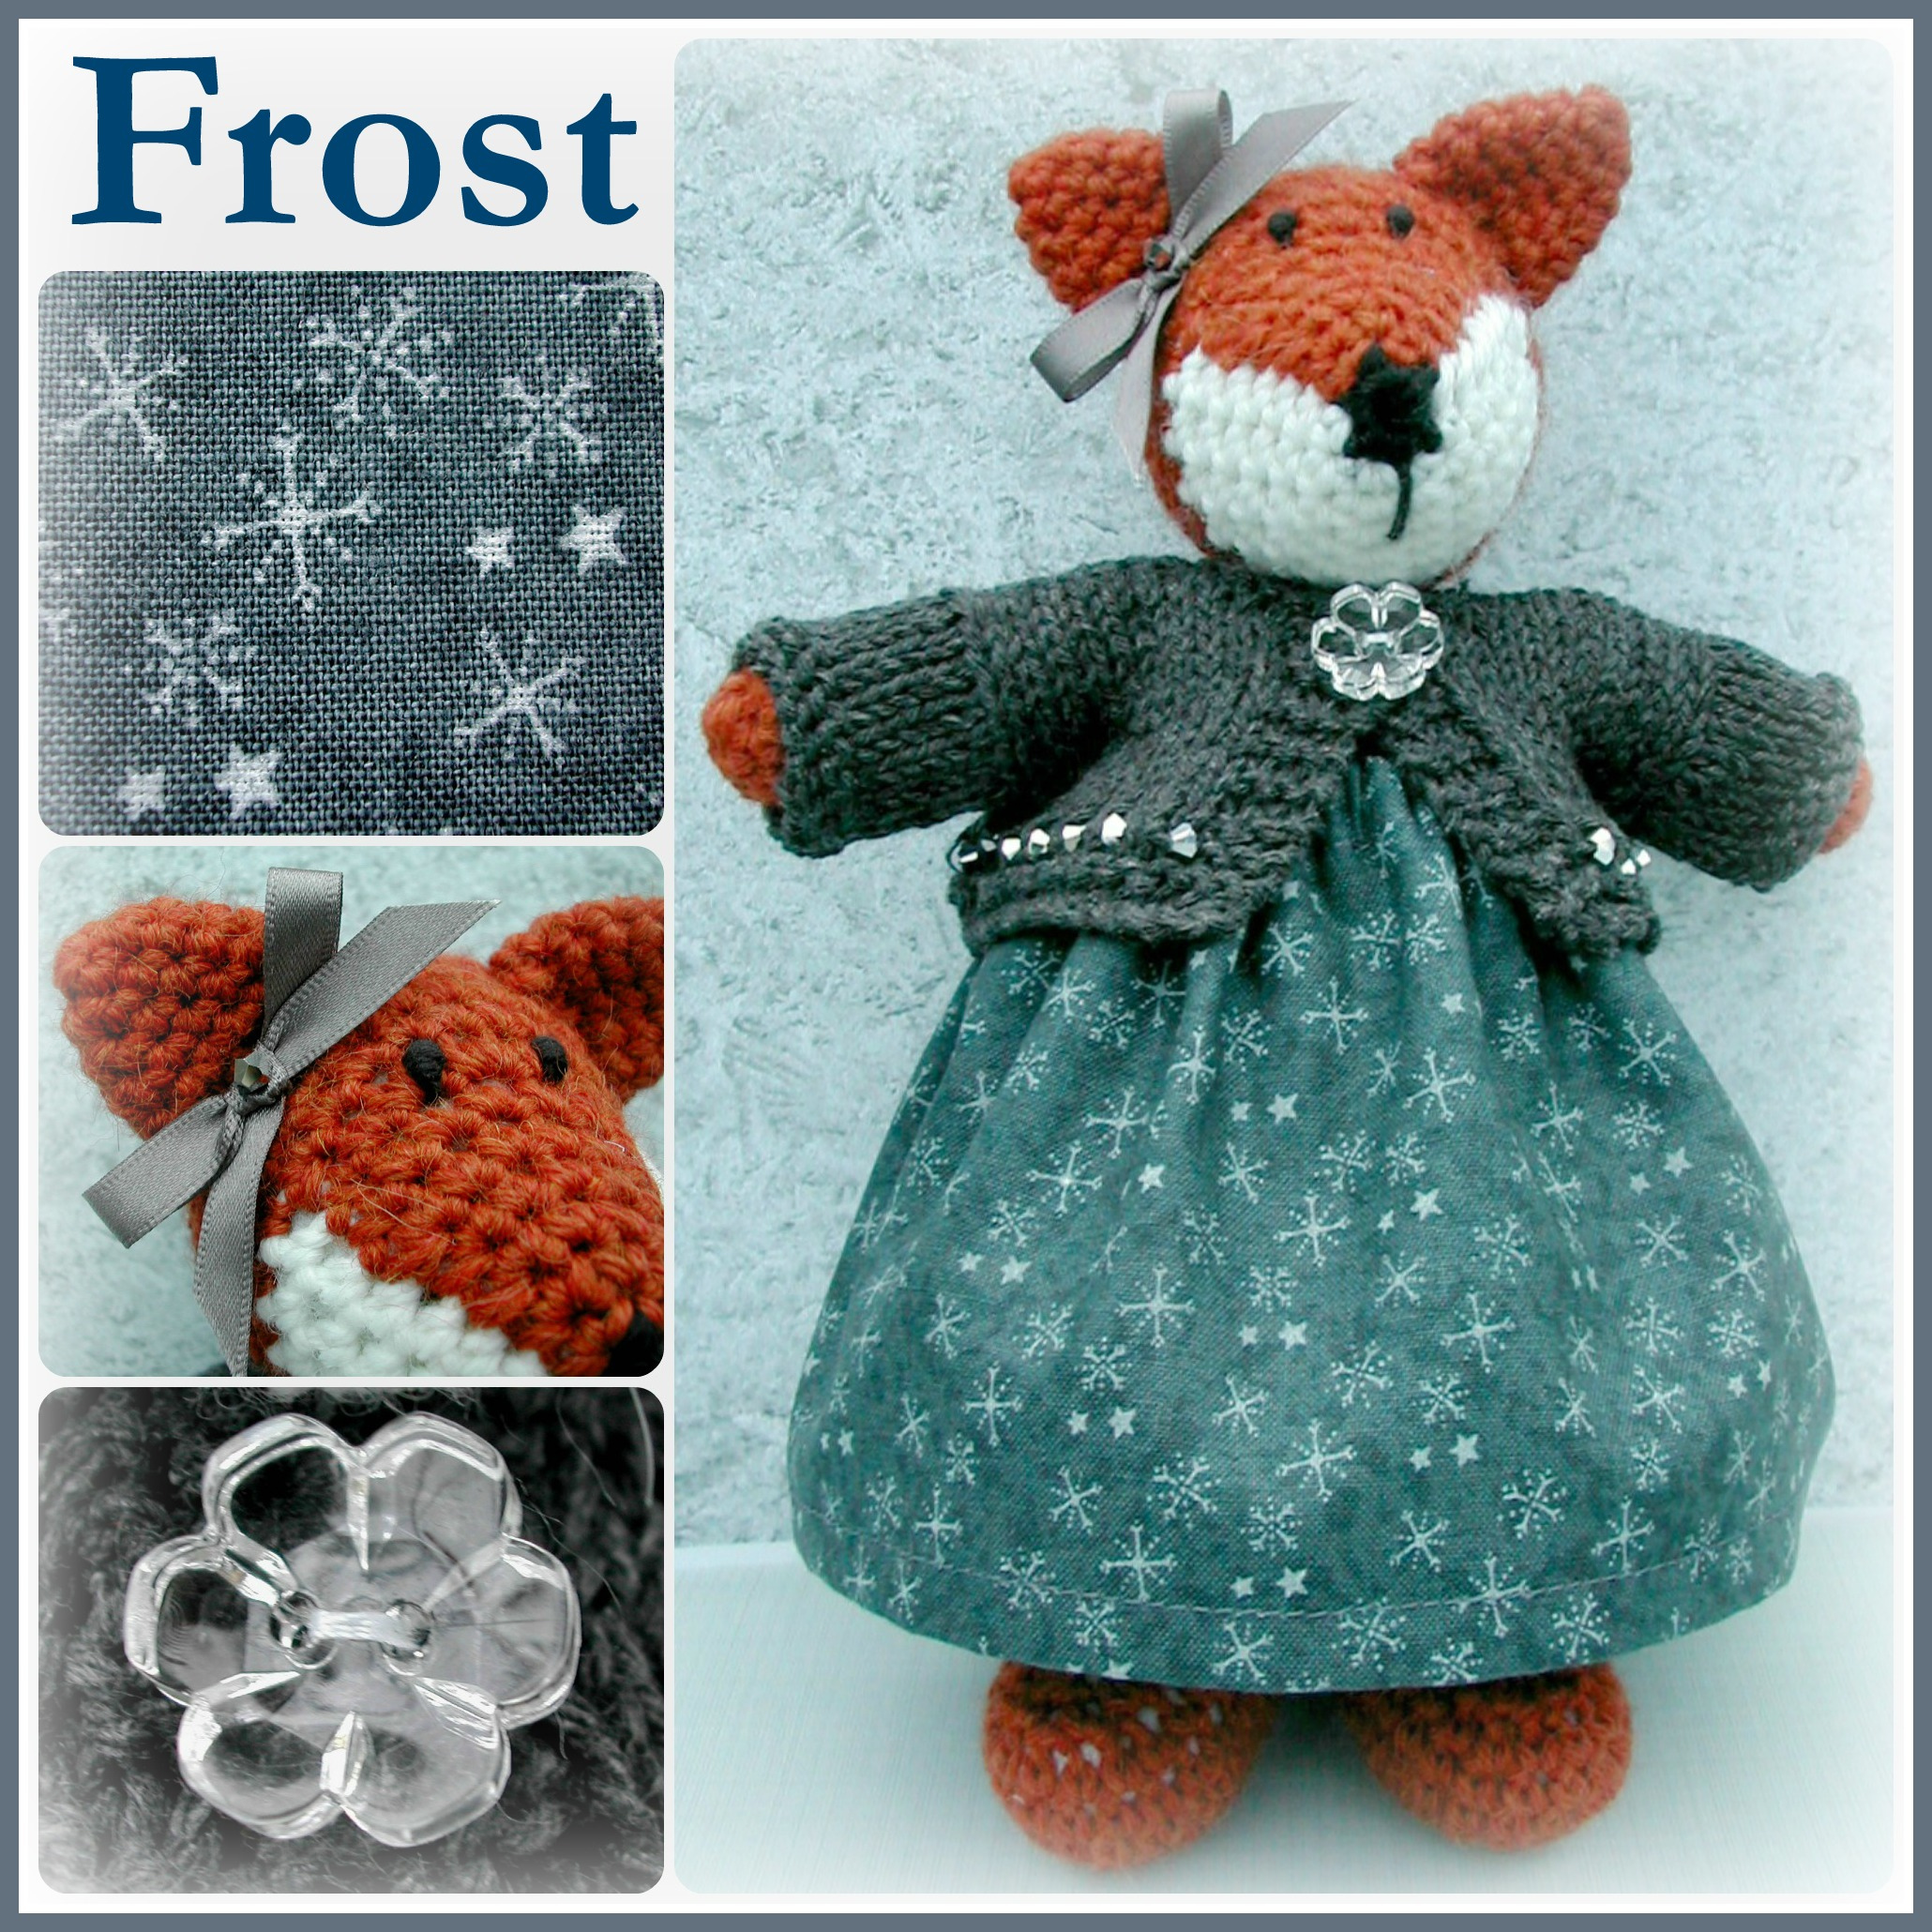 Frost Collage